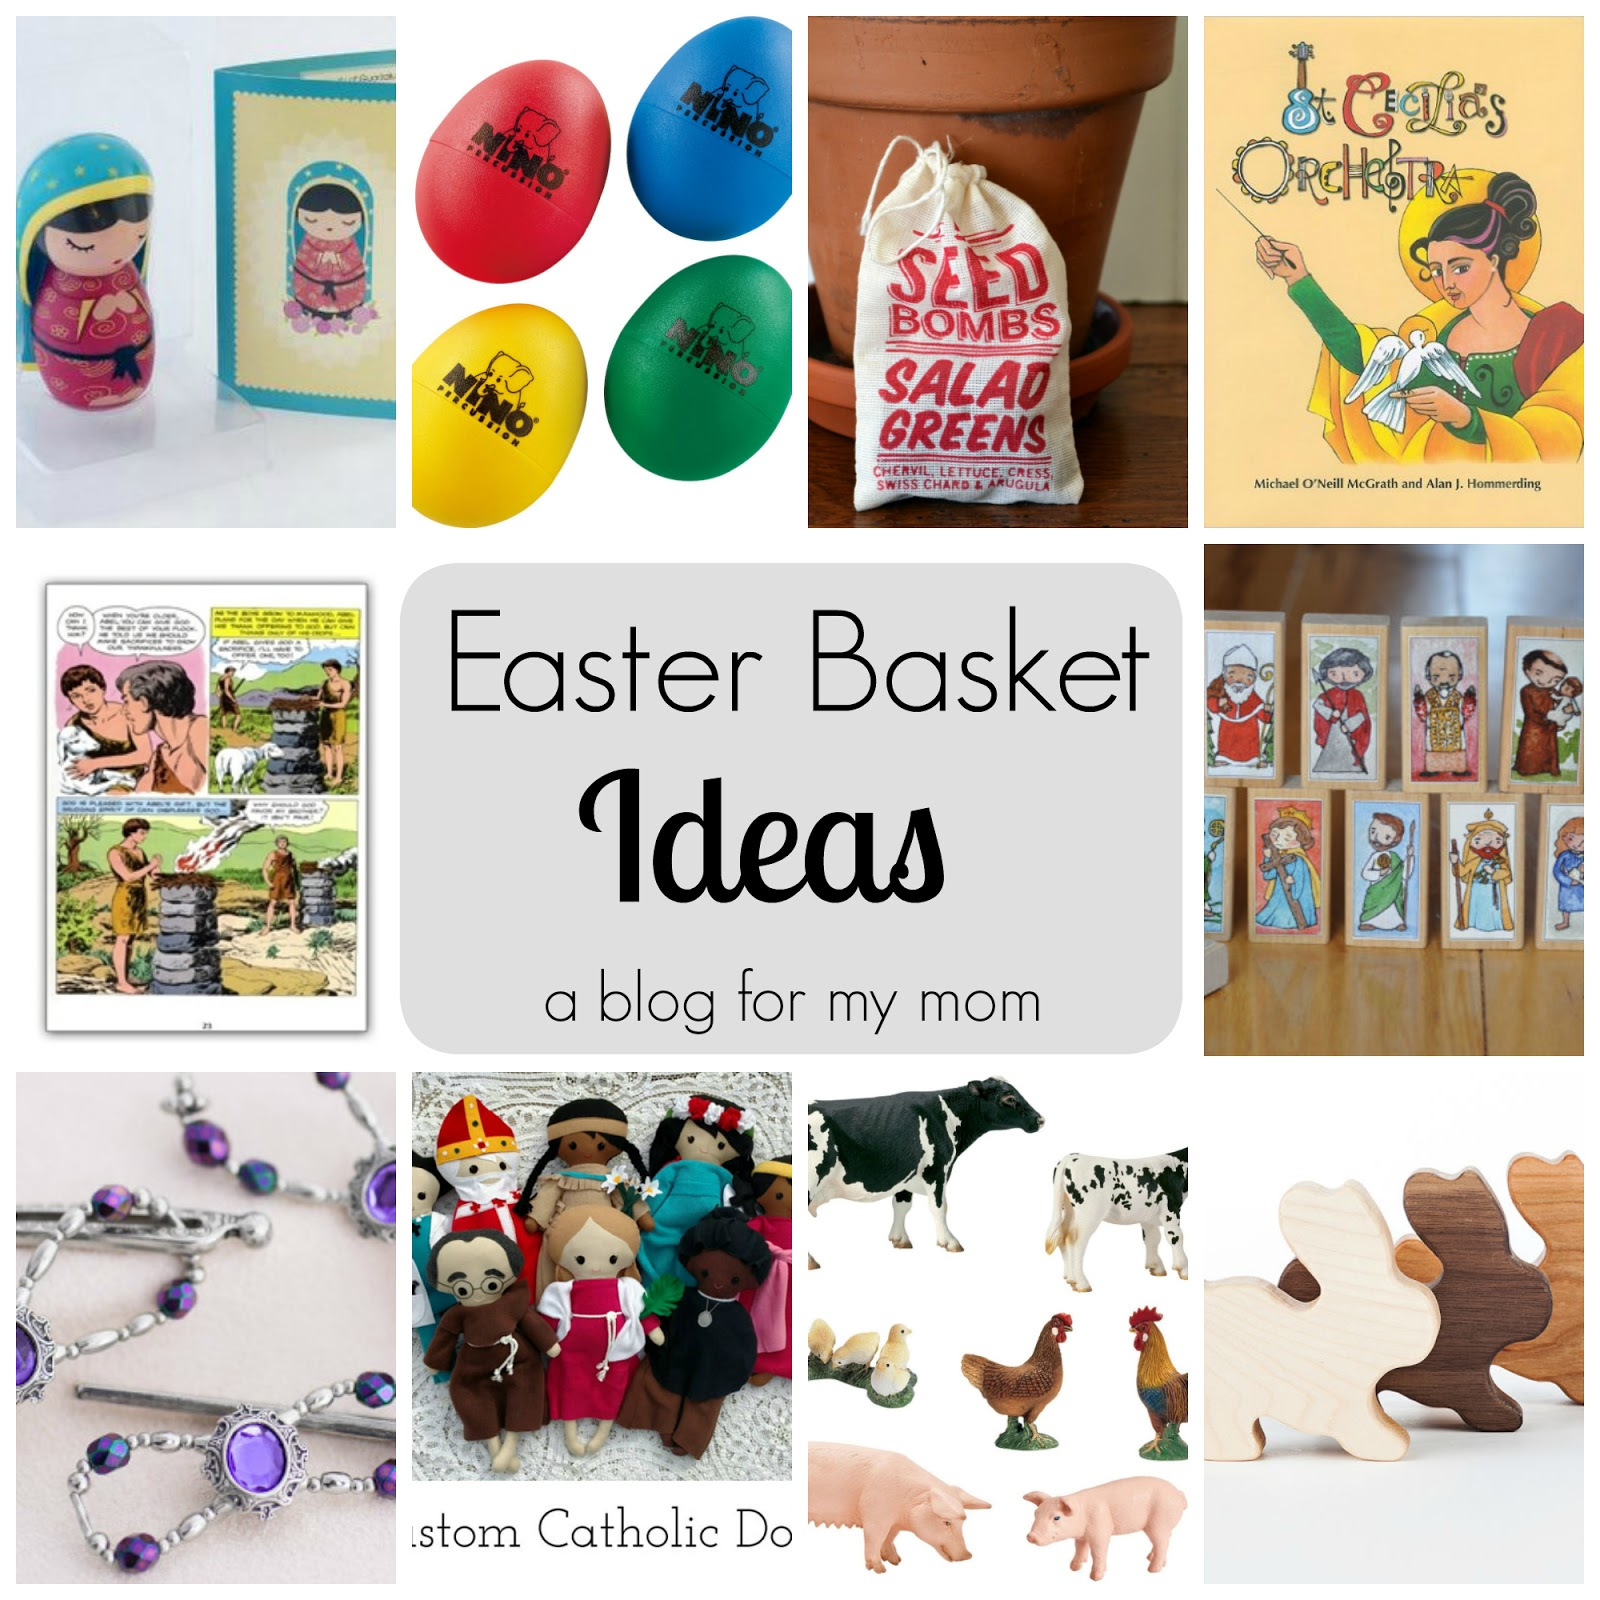 A blog for my mom easter basket ideas and a giveaway growing up we got plastic grass and a whole lot of candy i dont know why we got so much candy except that we really loved it and i think it might negle Images